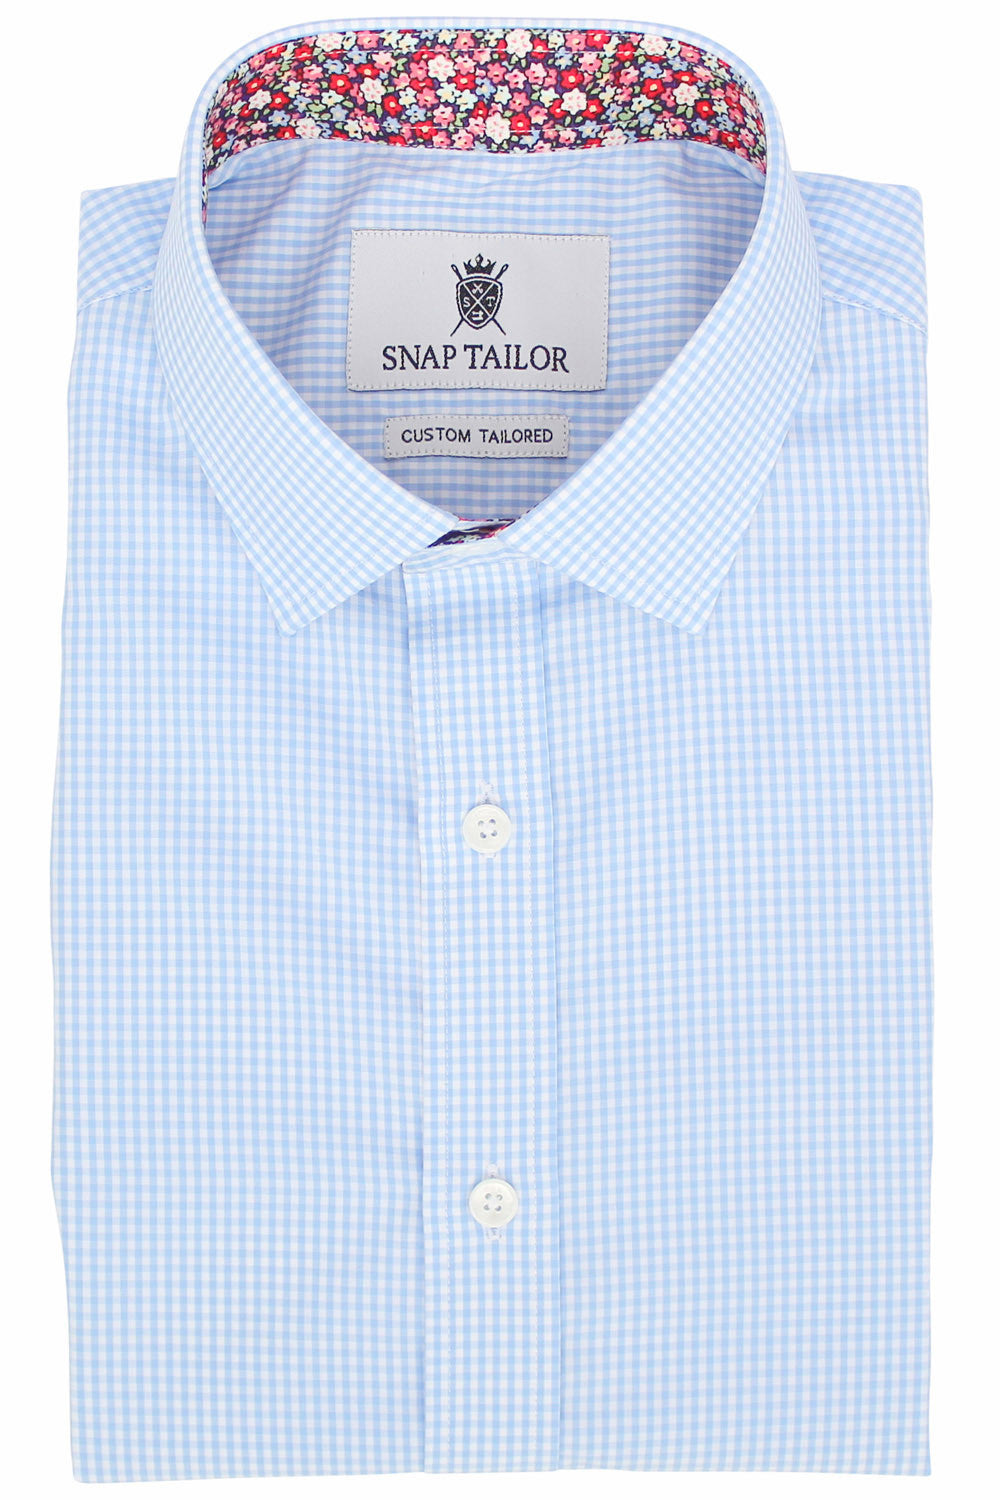 Alternate Photo of the Mini Gingham Dress Shirt in Light Blue